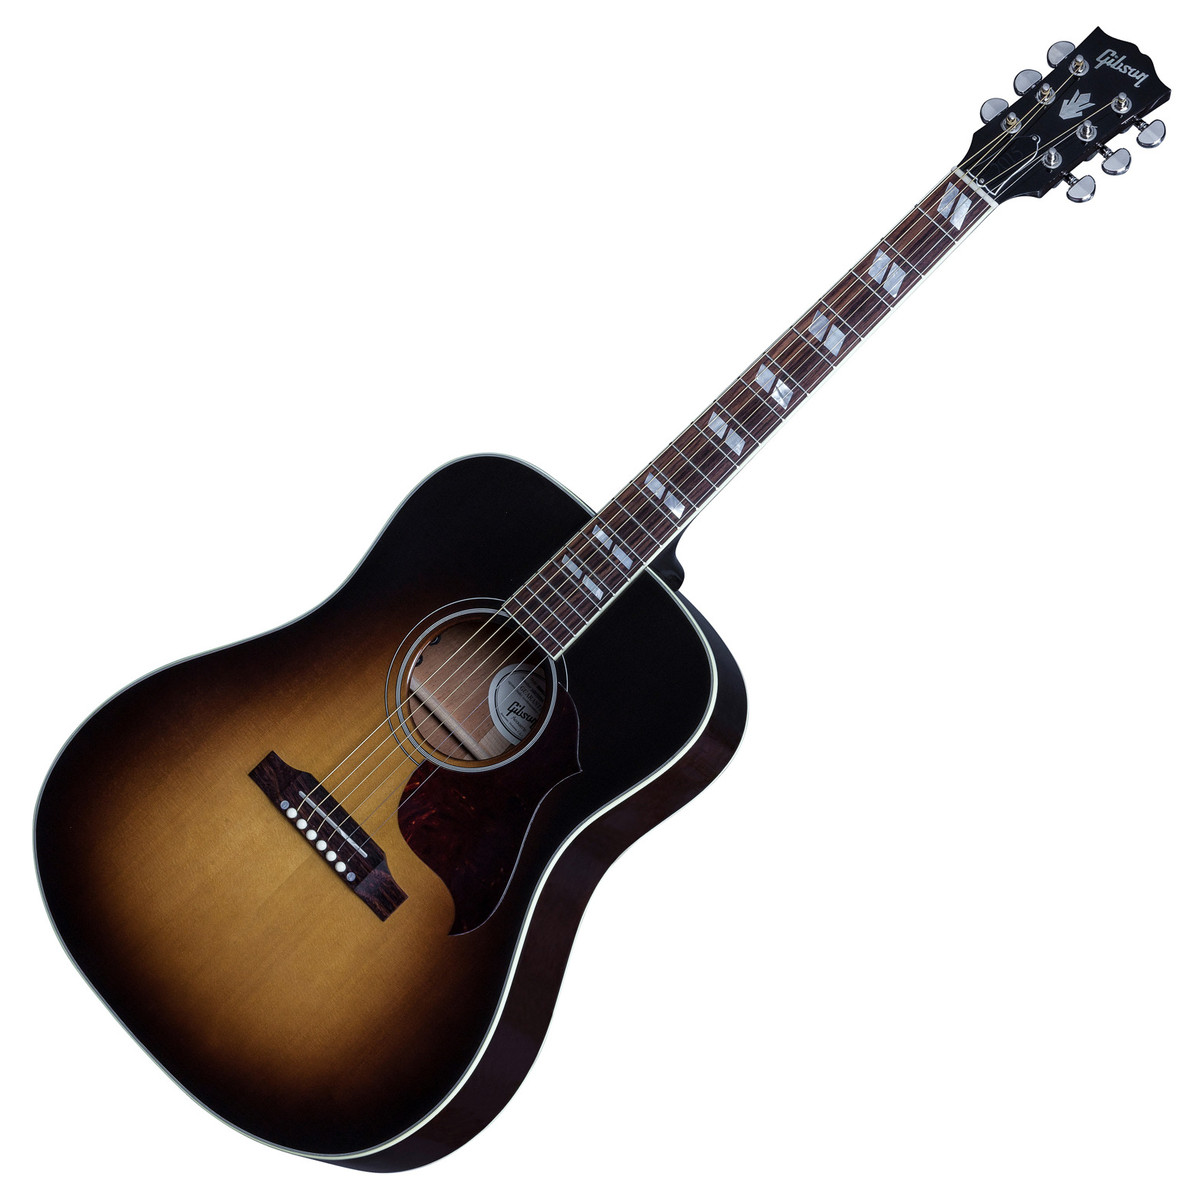 gibson hummingbird pro electro acoustic guitar vintage sunburst at. Black Bedroom Furniture Sets. Home Design Ideas